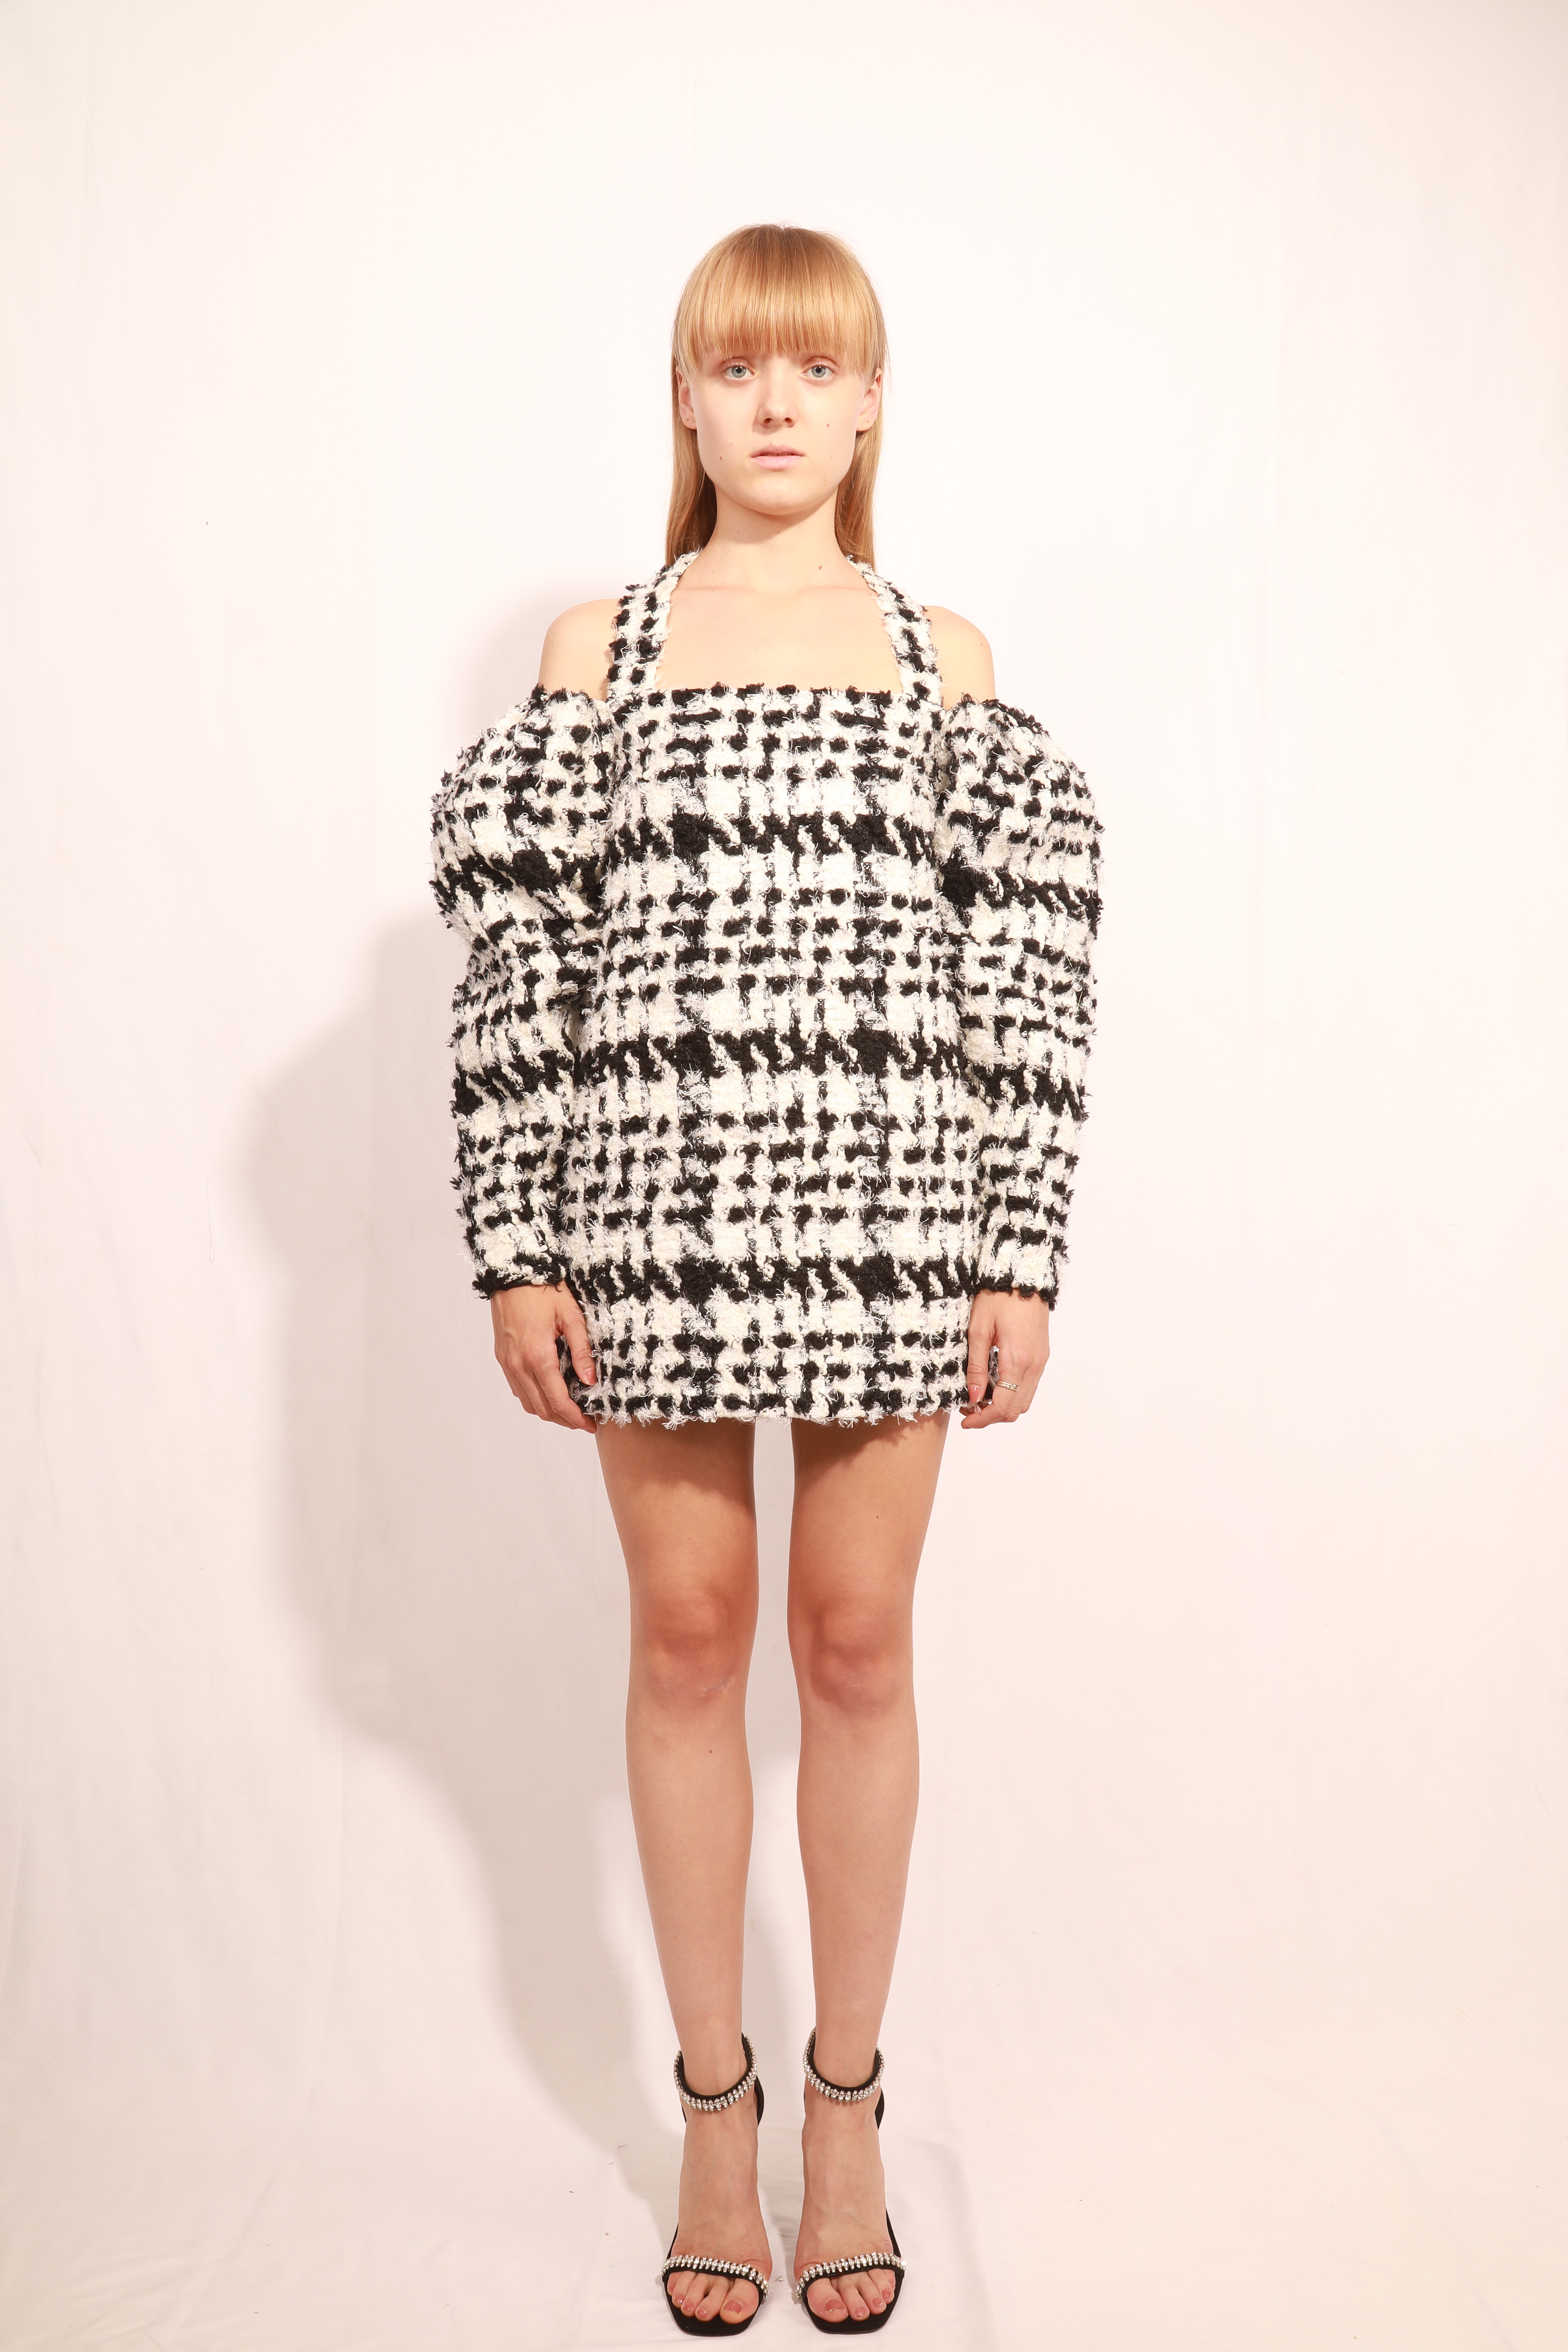 Ennuyer Dress by Rue Agthonis on curated-crowd.com